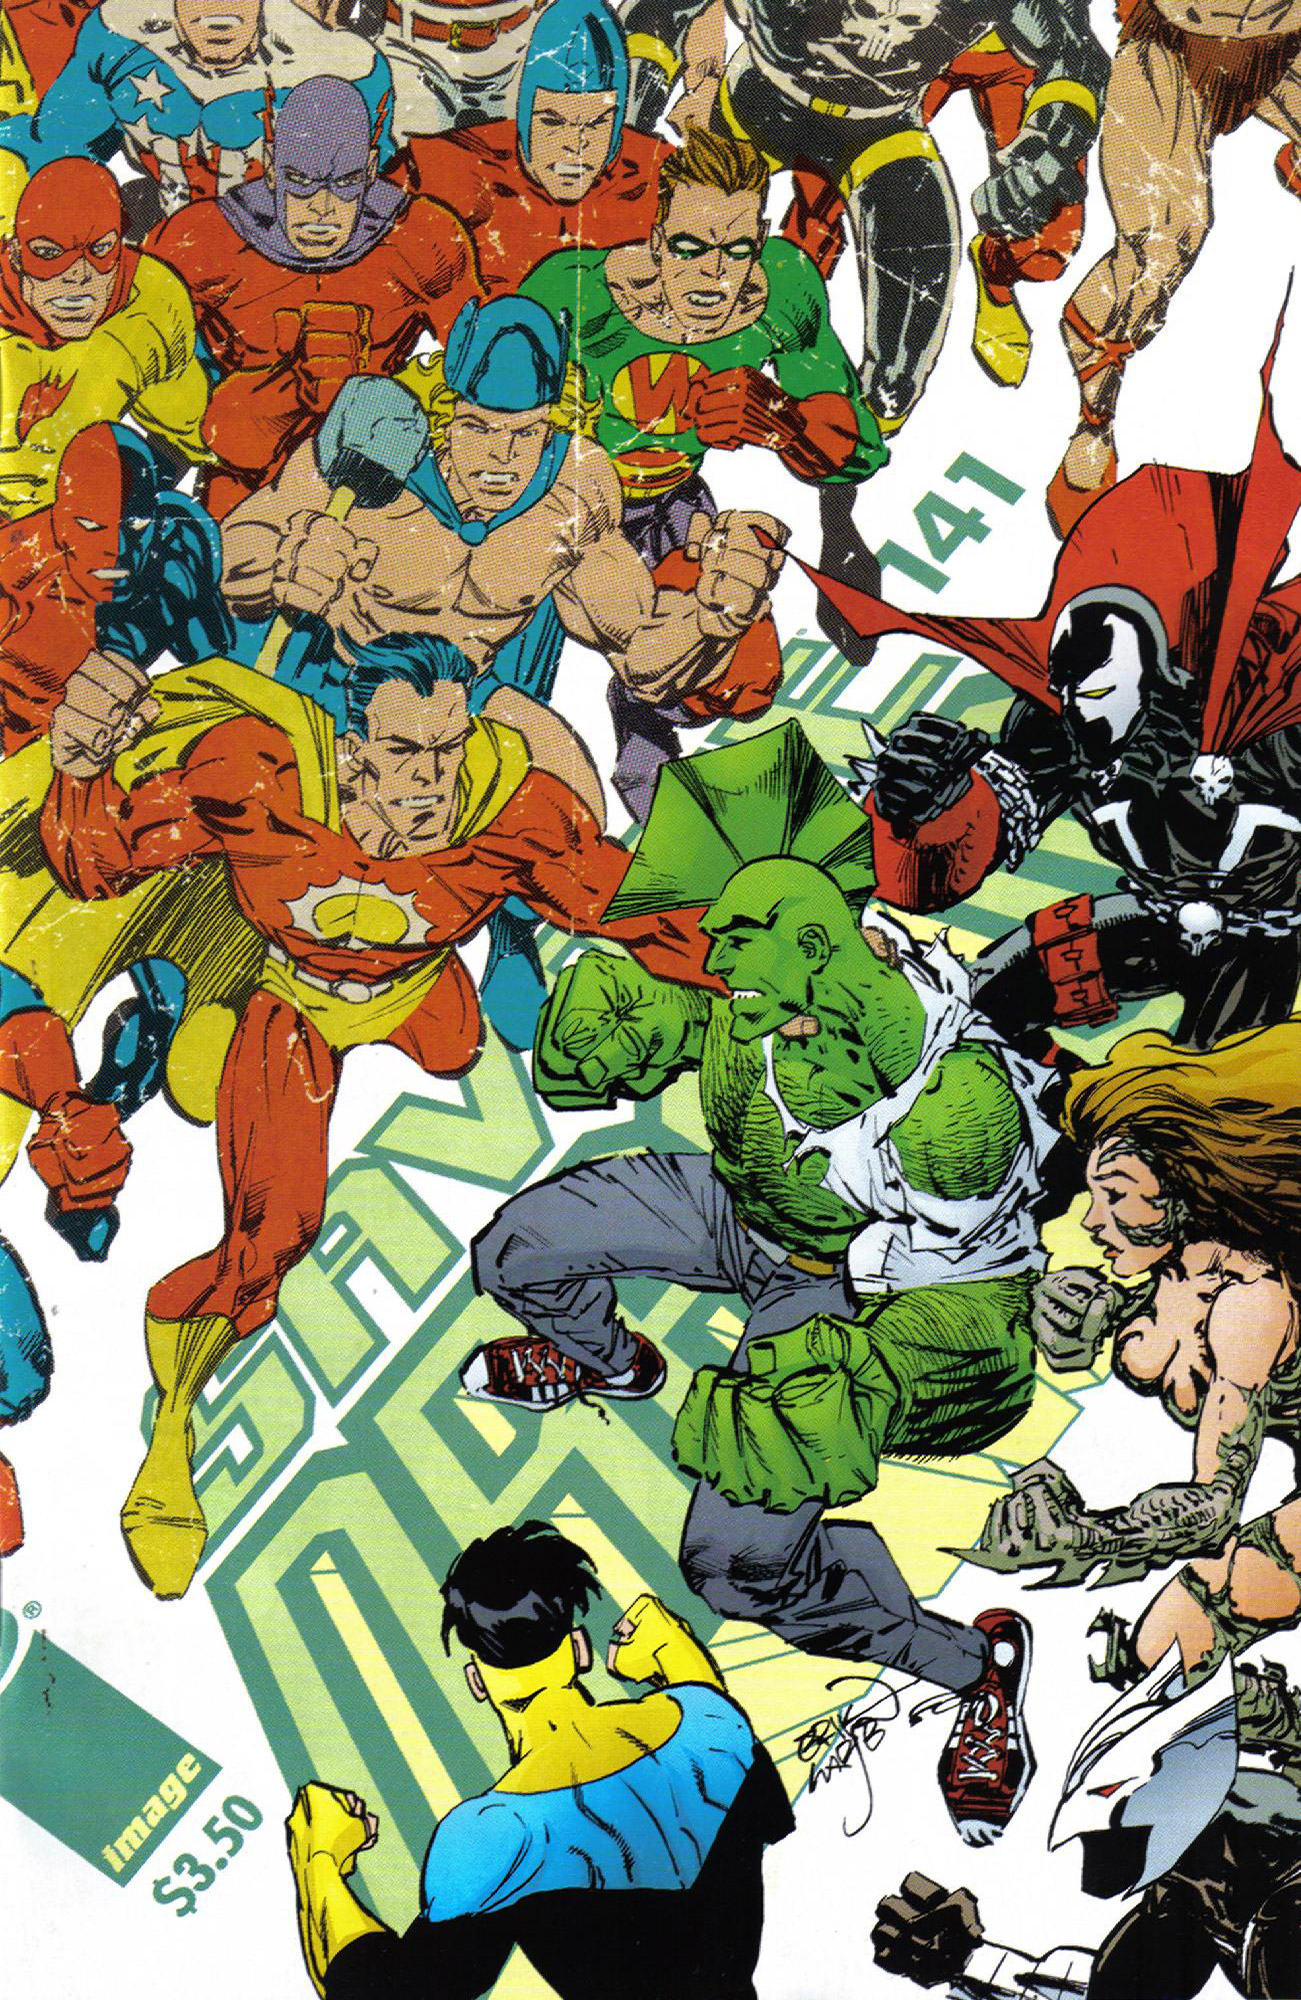 Cover Savage Dragon Vol.2 #141